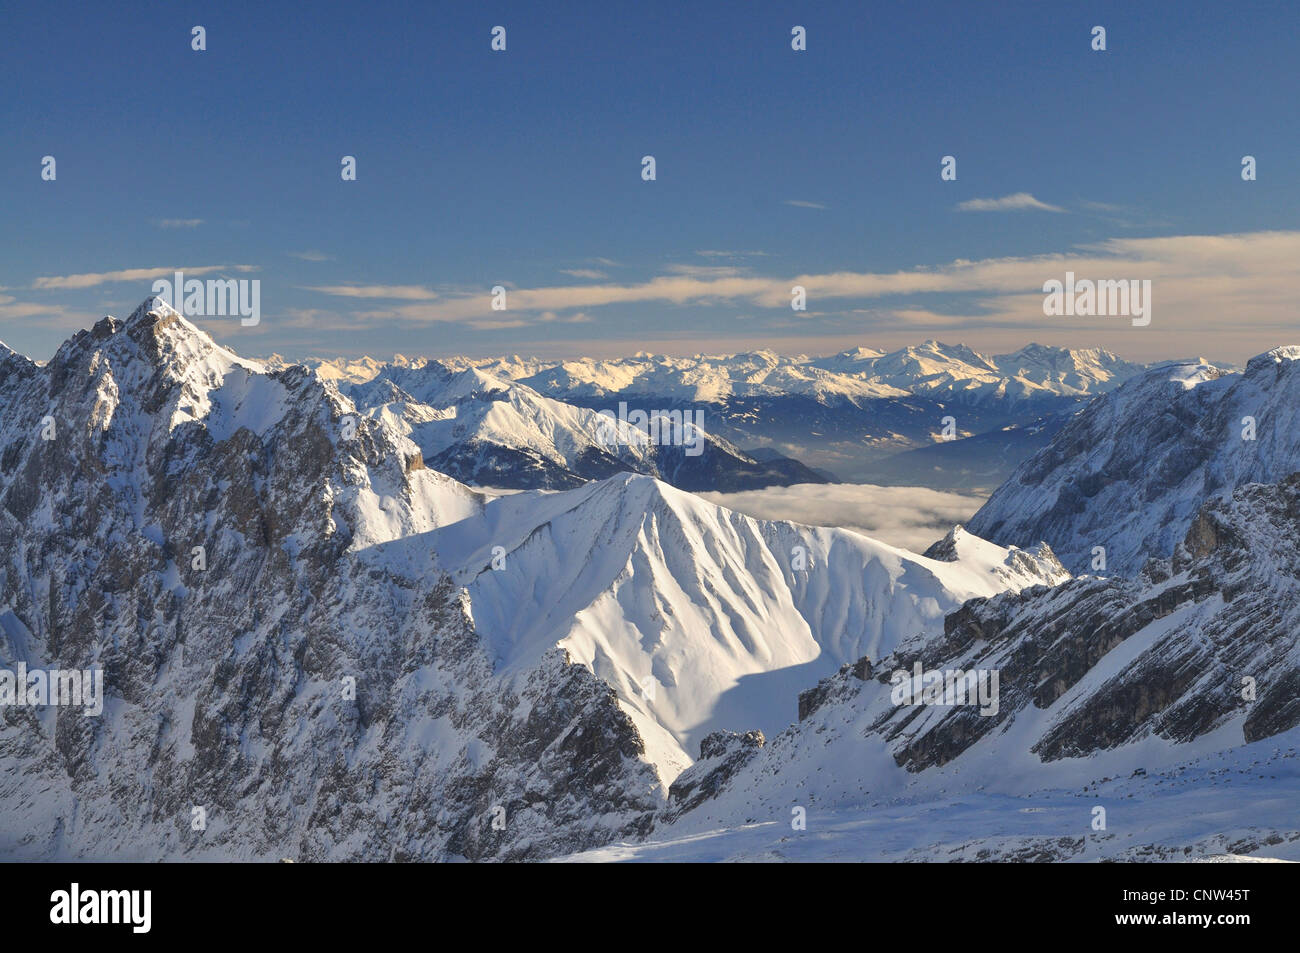 summits of the alps; view from the Zugsitze , Germany, Bavaria - Stock Image